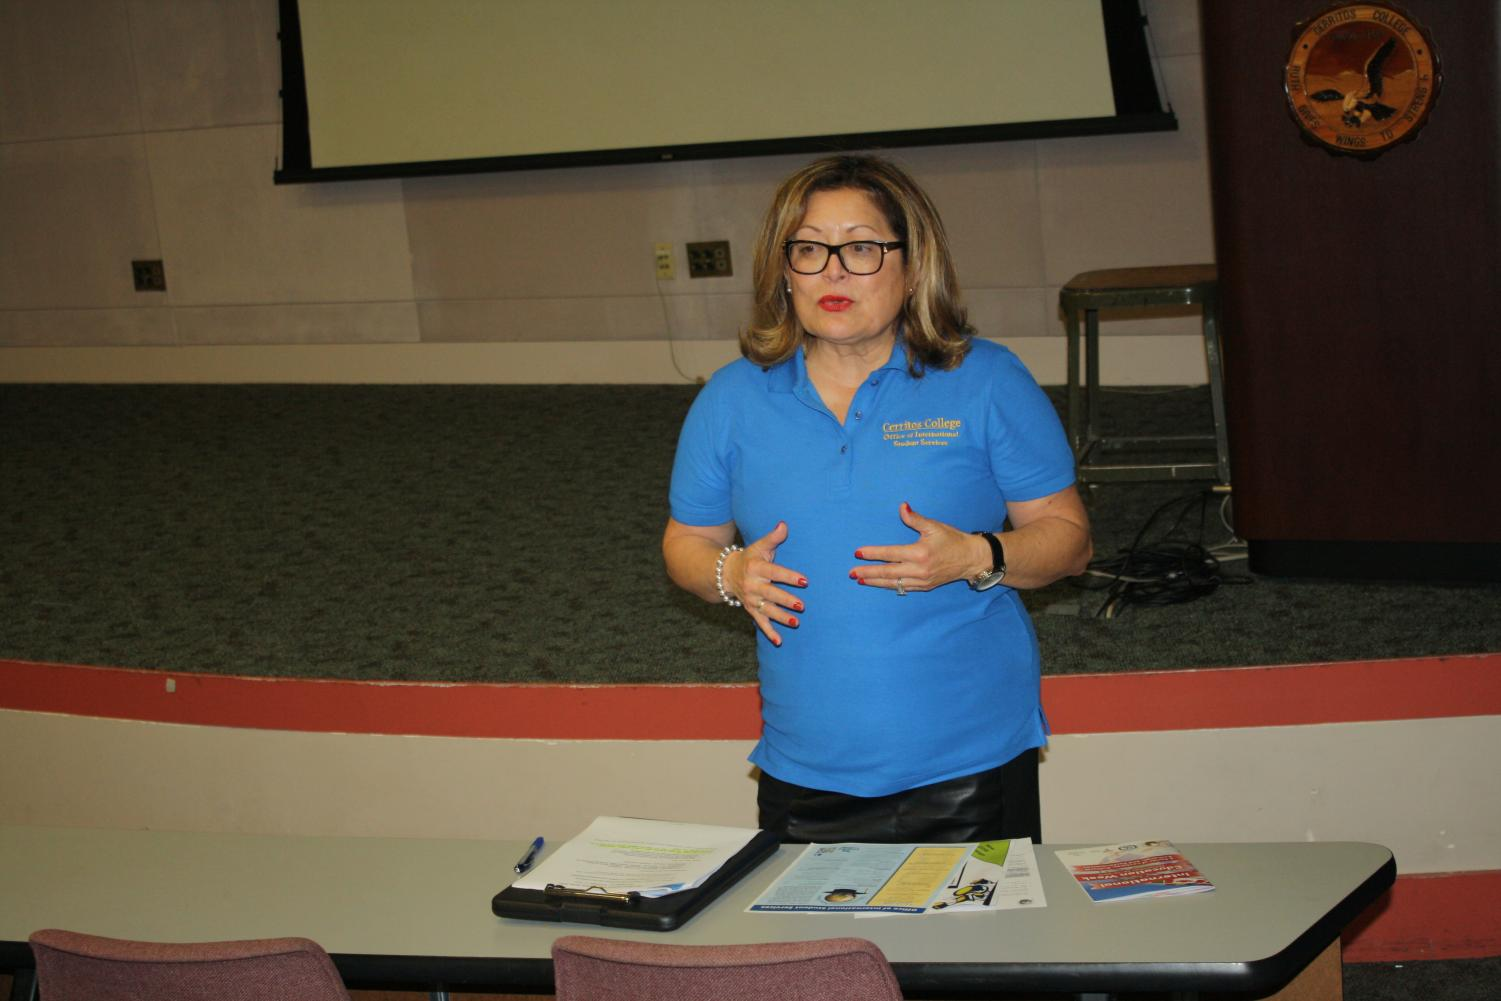 Director of Student Services Program, Norma Rodriguez explained how Chicano Studies is important to society. Chicano Studies can prepare students for different careers as well. Photo credit: Nicholas Johnson